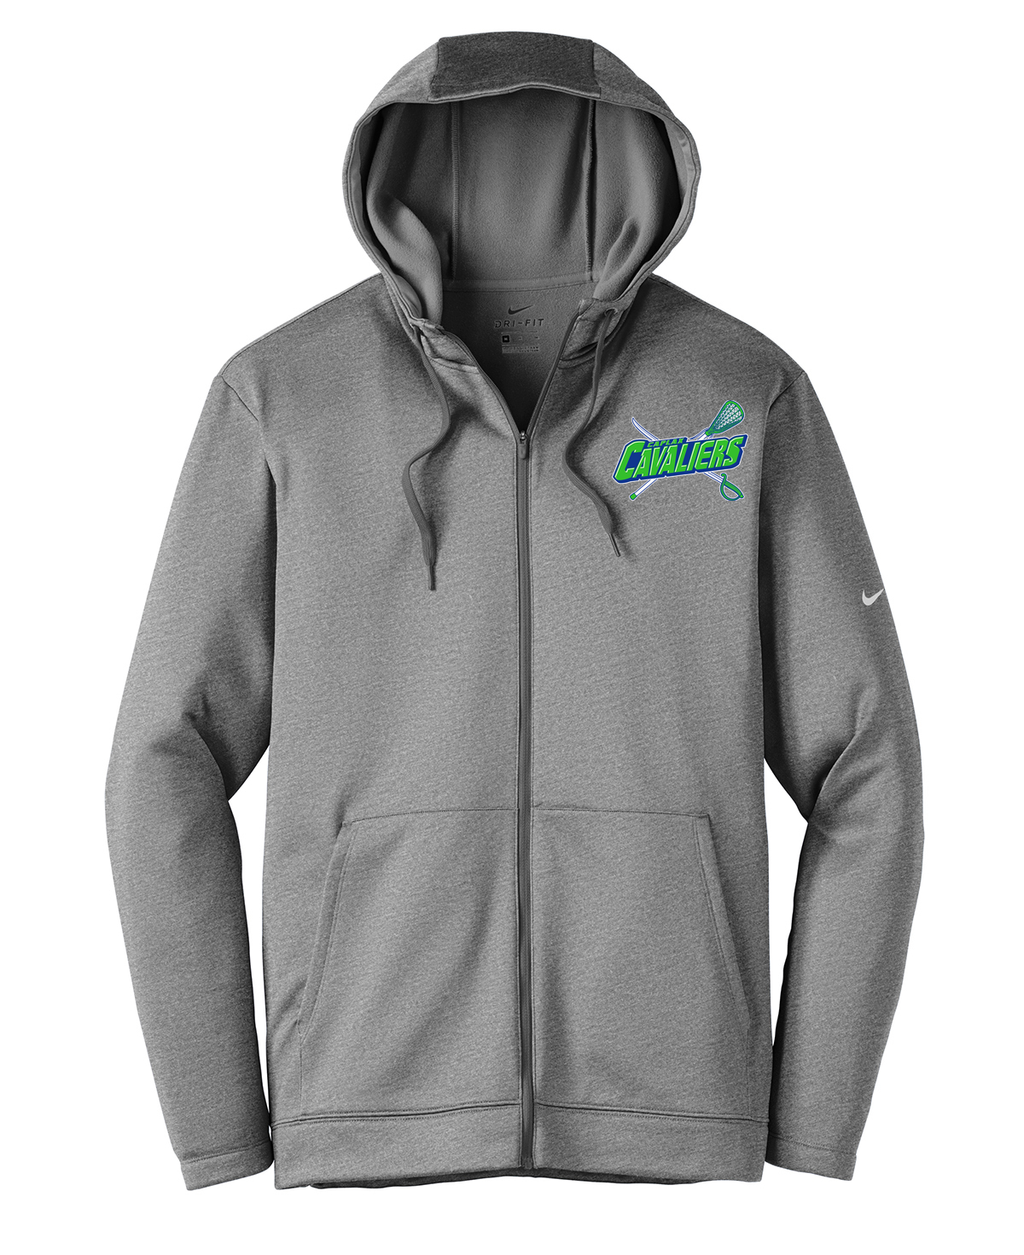 Cavaliers Lacrosse Nike Therma-FIT Full Zip Hoodie